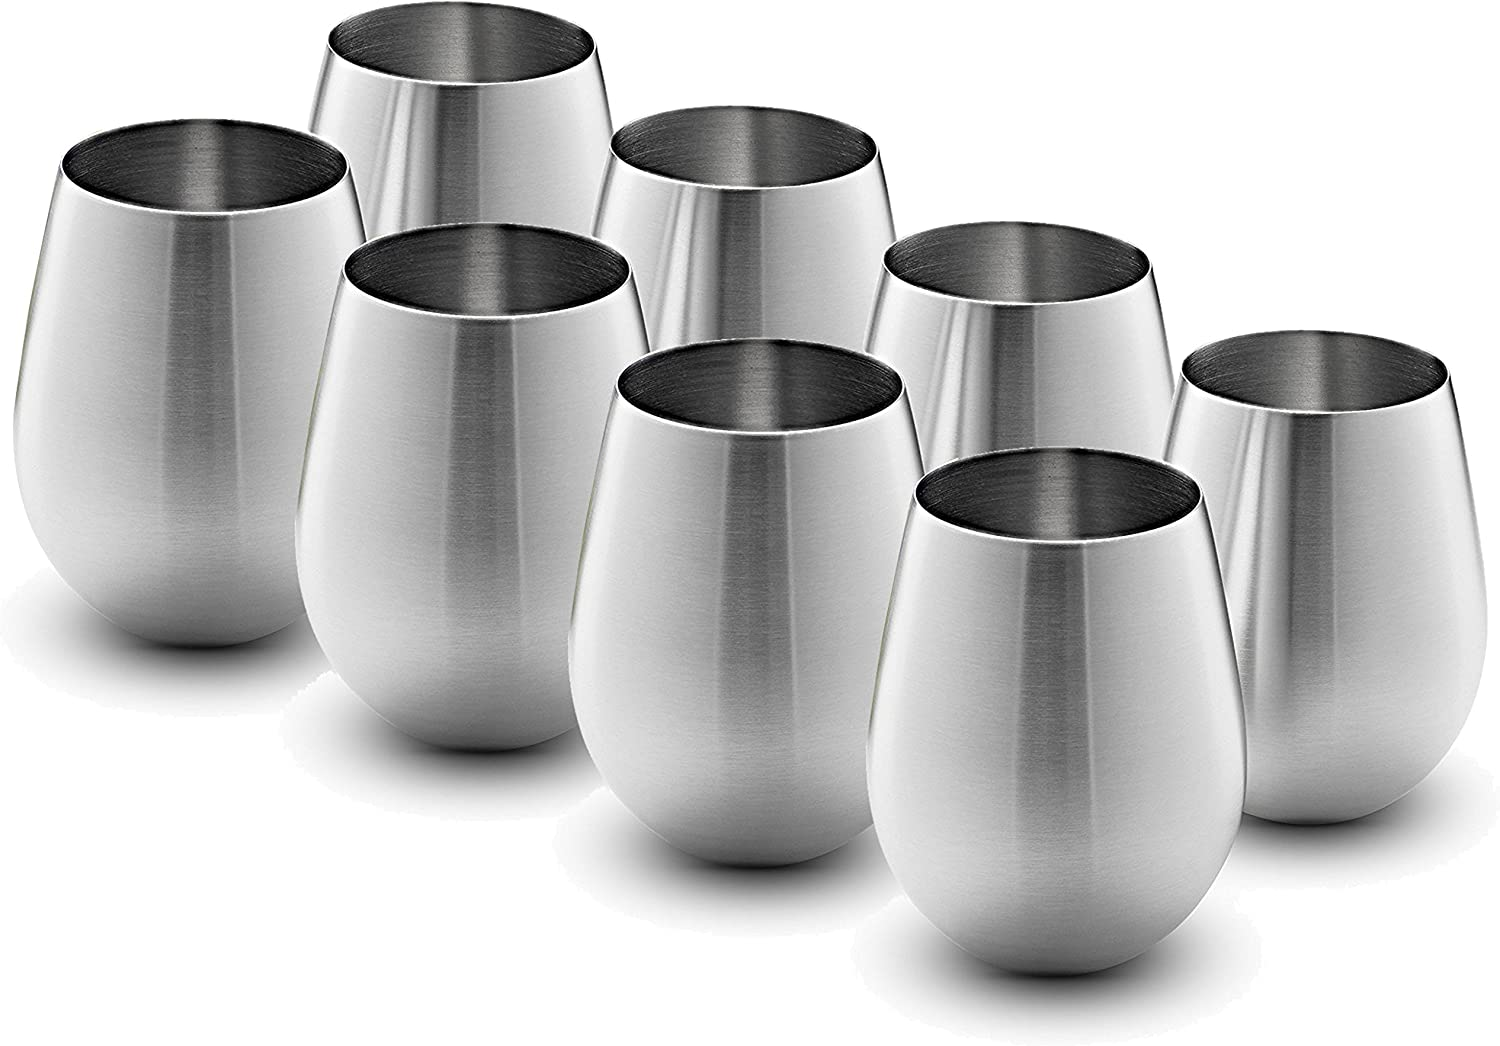 Stainless Steel Wine Glasses - Set of 8 Large & Elegant 18 Oz. Premium Grade 18/8 Stainless Steel Red & White Stemless Wine Glasses, Unbreakable, Portable Wine Tumbler, for Outdoor Events, Picnics